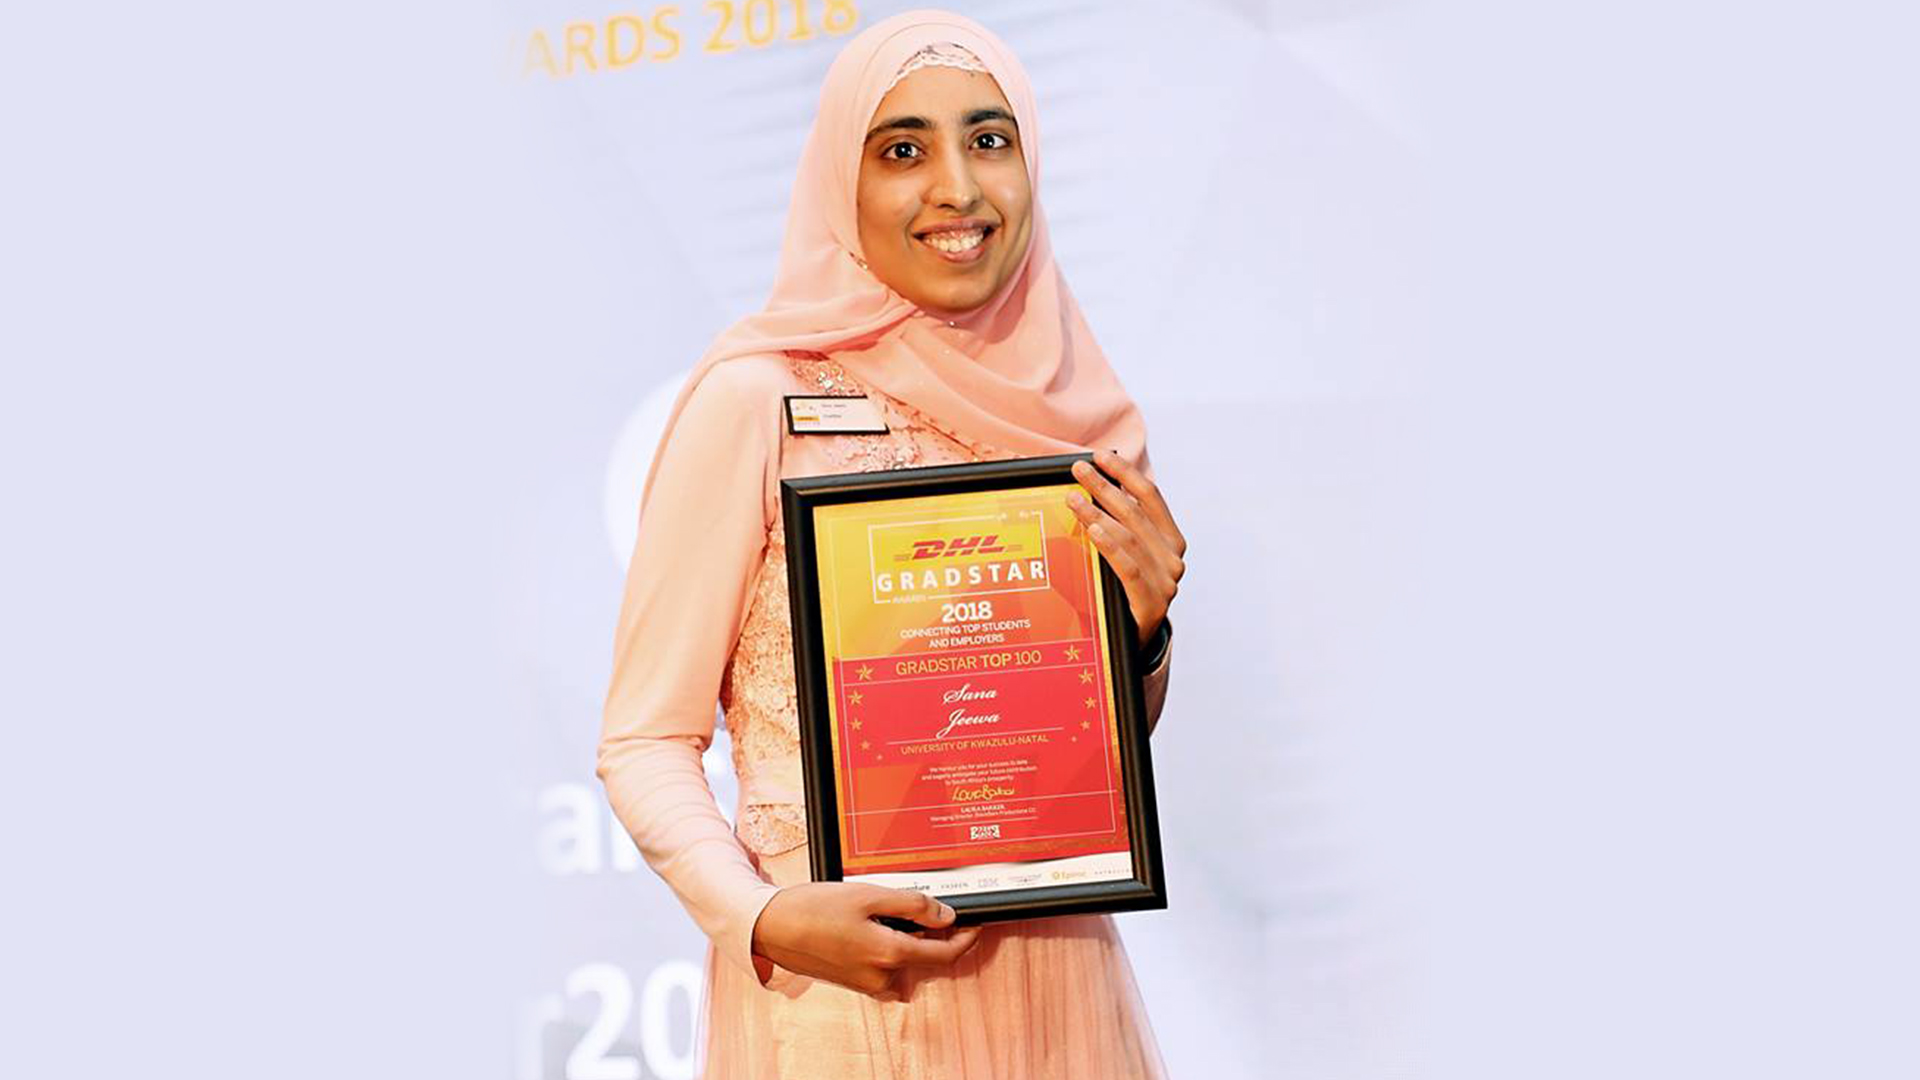 Sana Jeewa receiving her Gradstar Award.